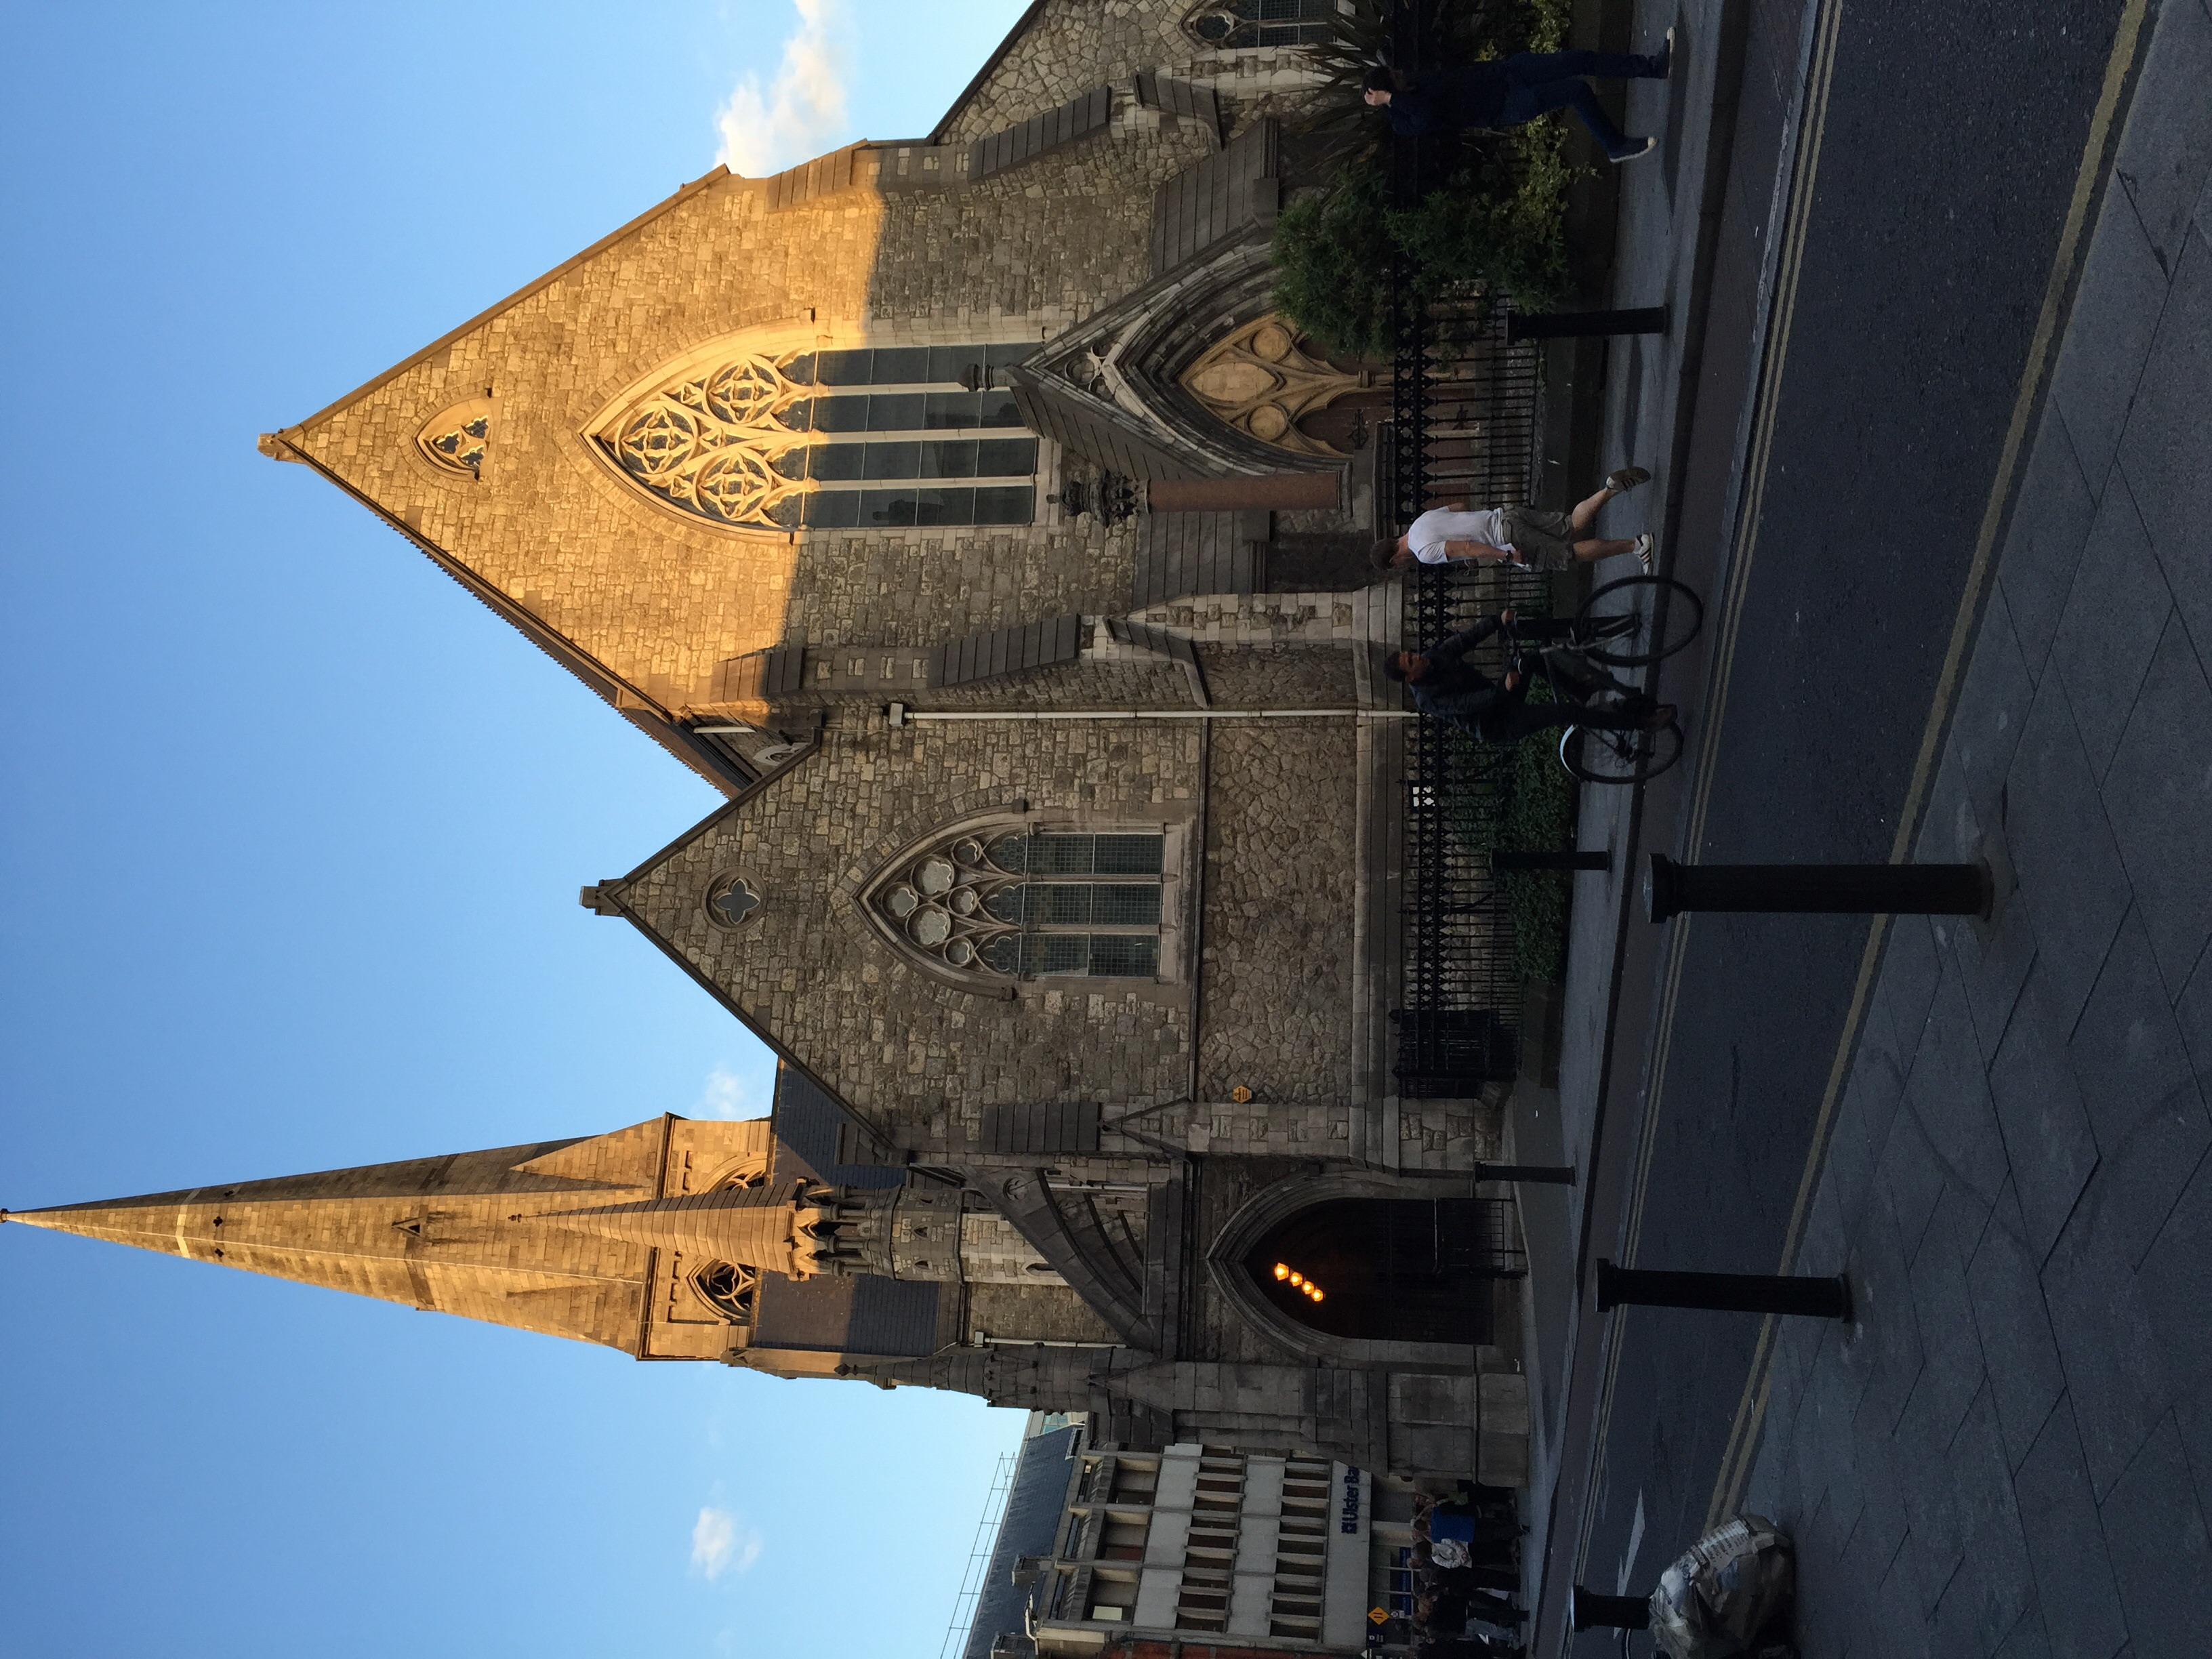 Christ Church in the evening...